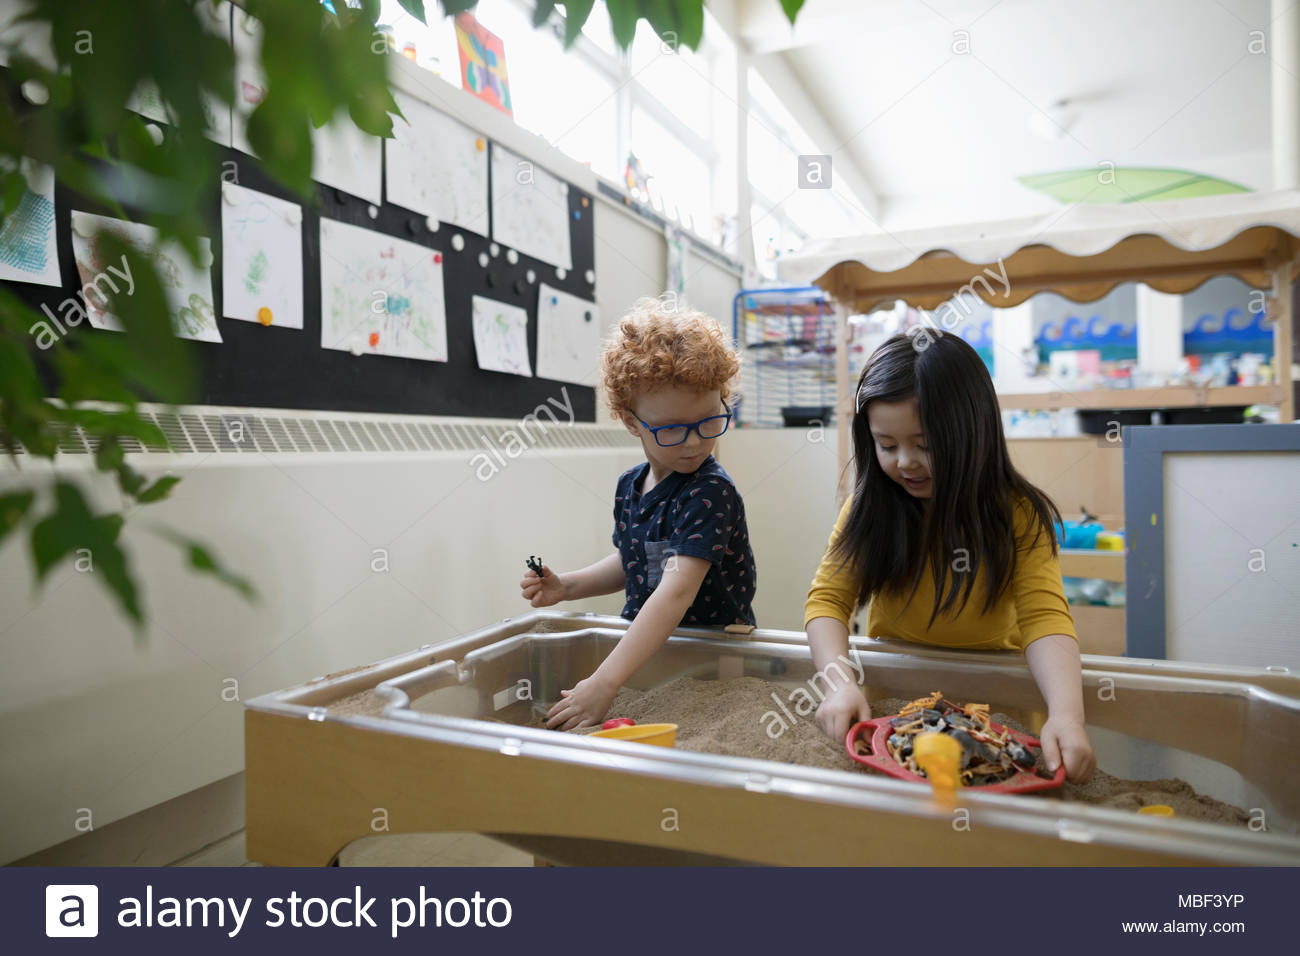 Preschool boy and girl playing in sandbox in classroom - Stock Image